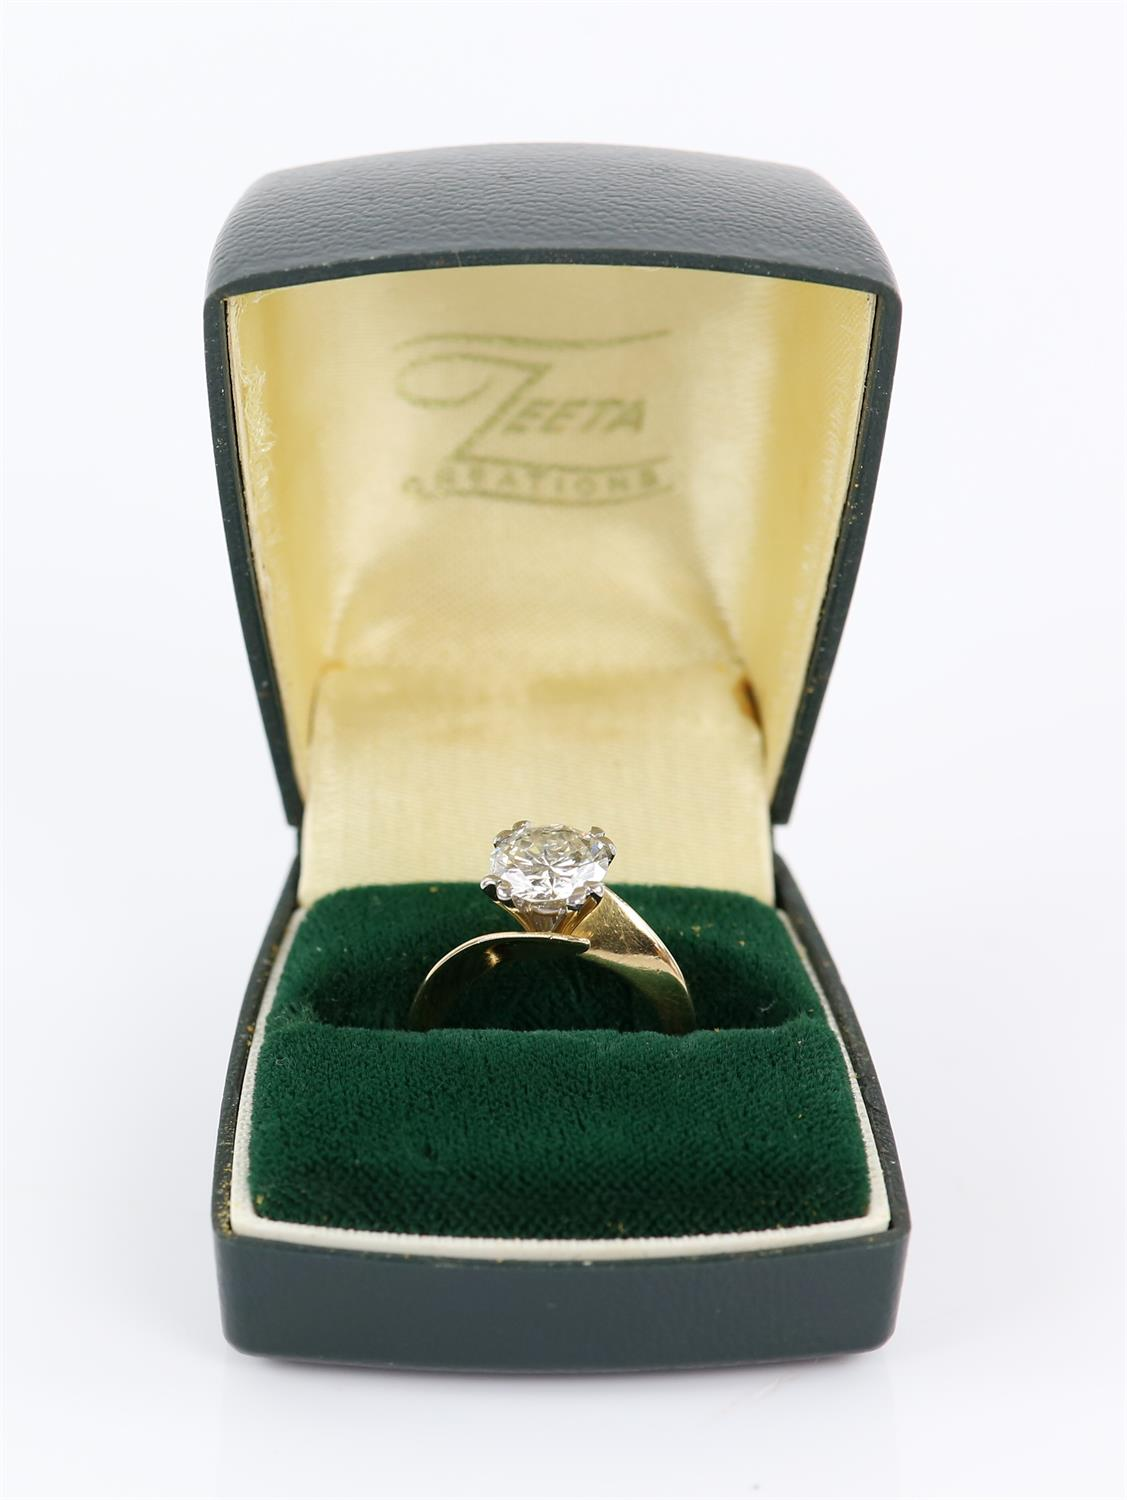 Single stone diamond ring, round brilliant cut diamond weighing an estimated 2.02 carats, - Image 6 of 6